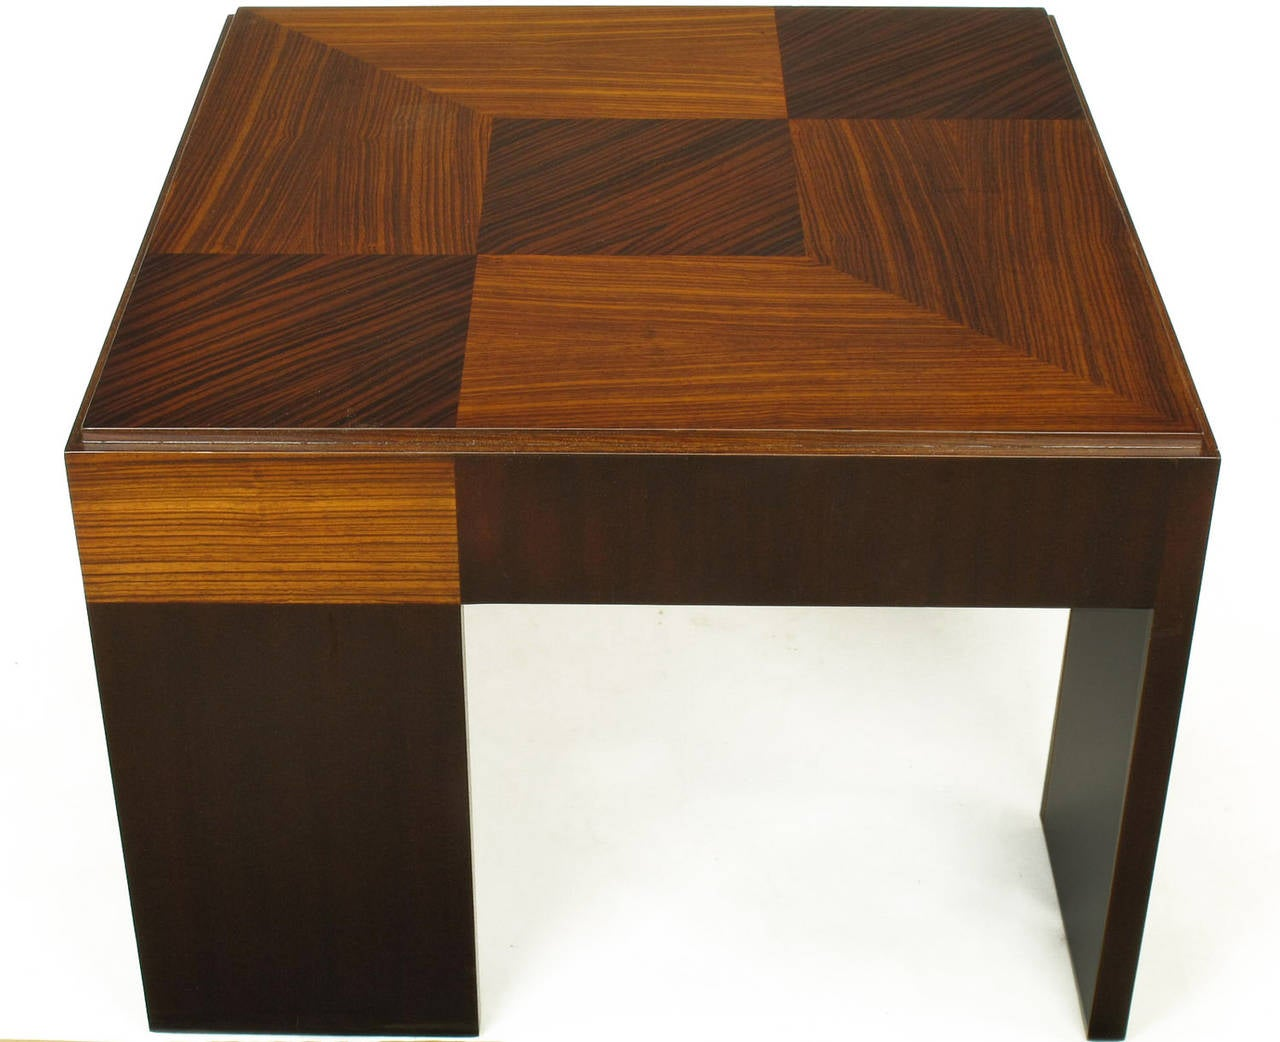 John Widdicomb Natural and Bleached Macassar Ebony and Walnut Coffee Table In Excellent Condition For Sale In Chicago, IL